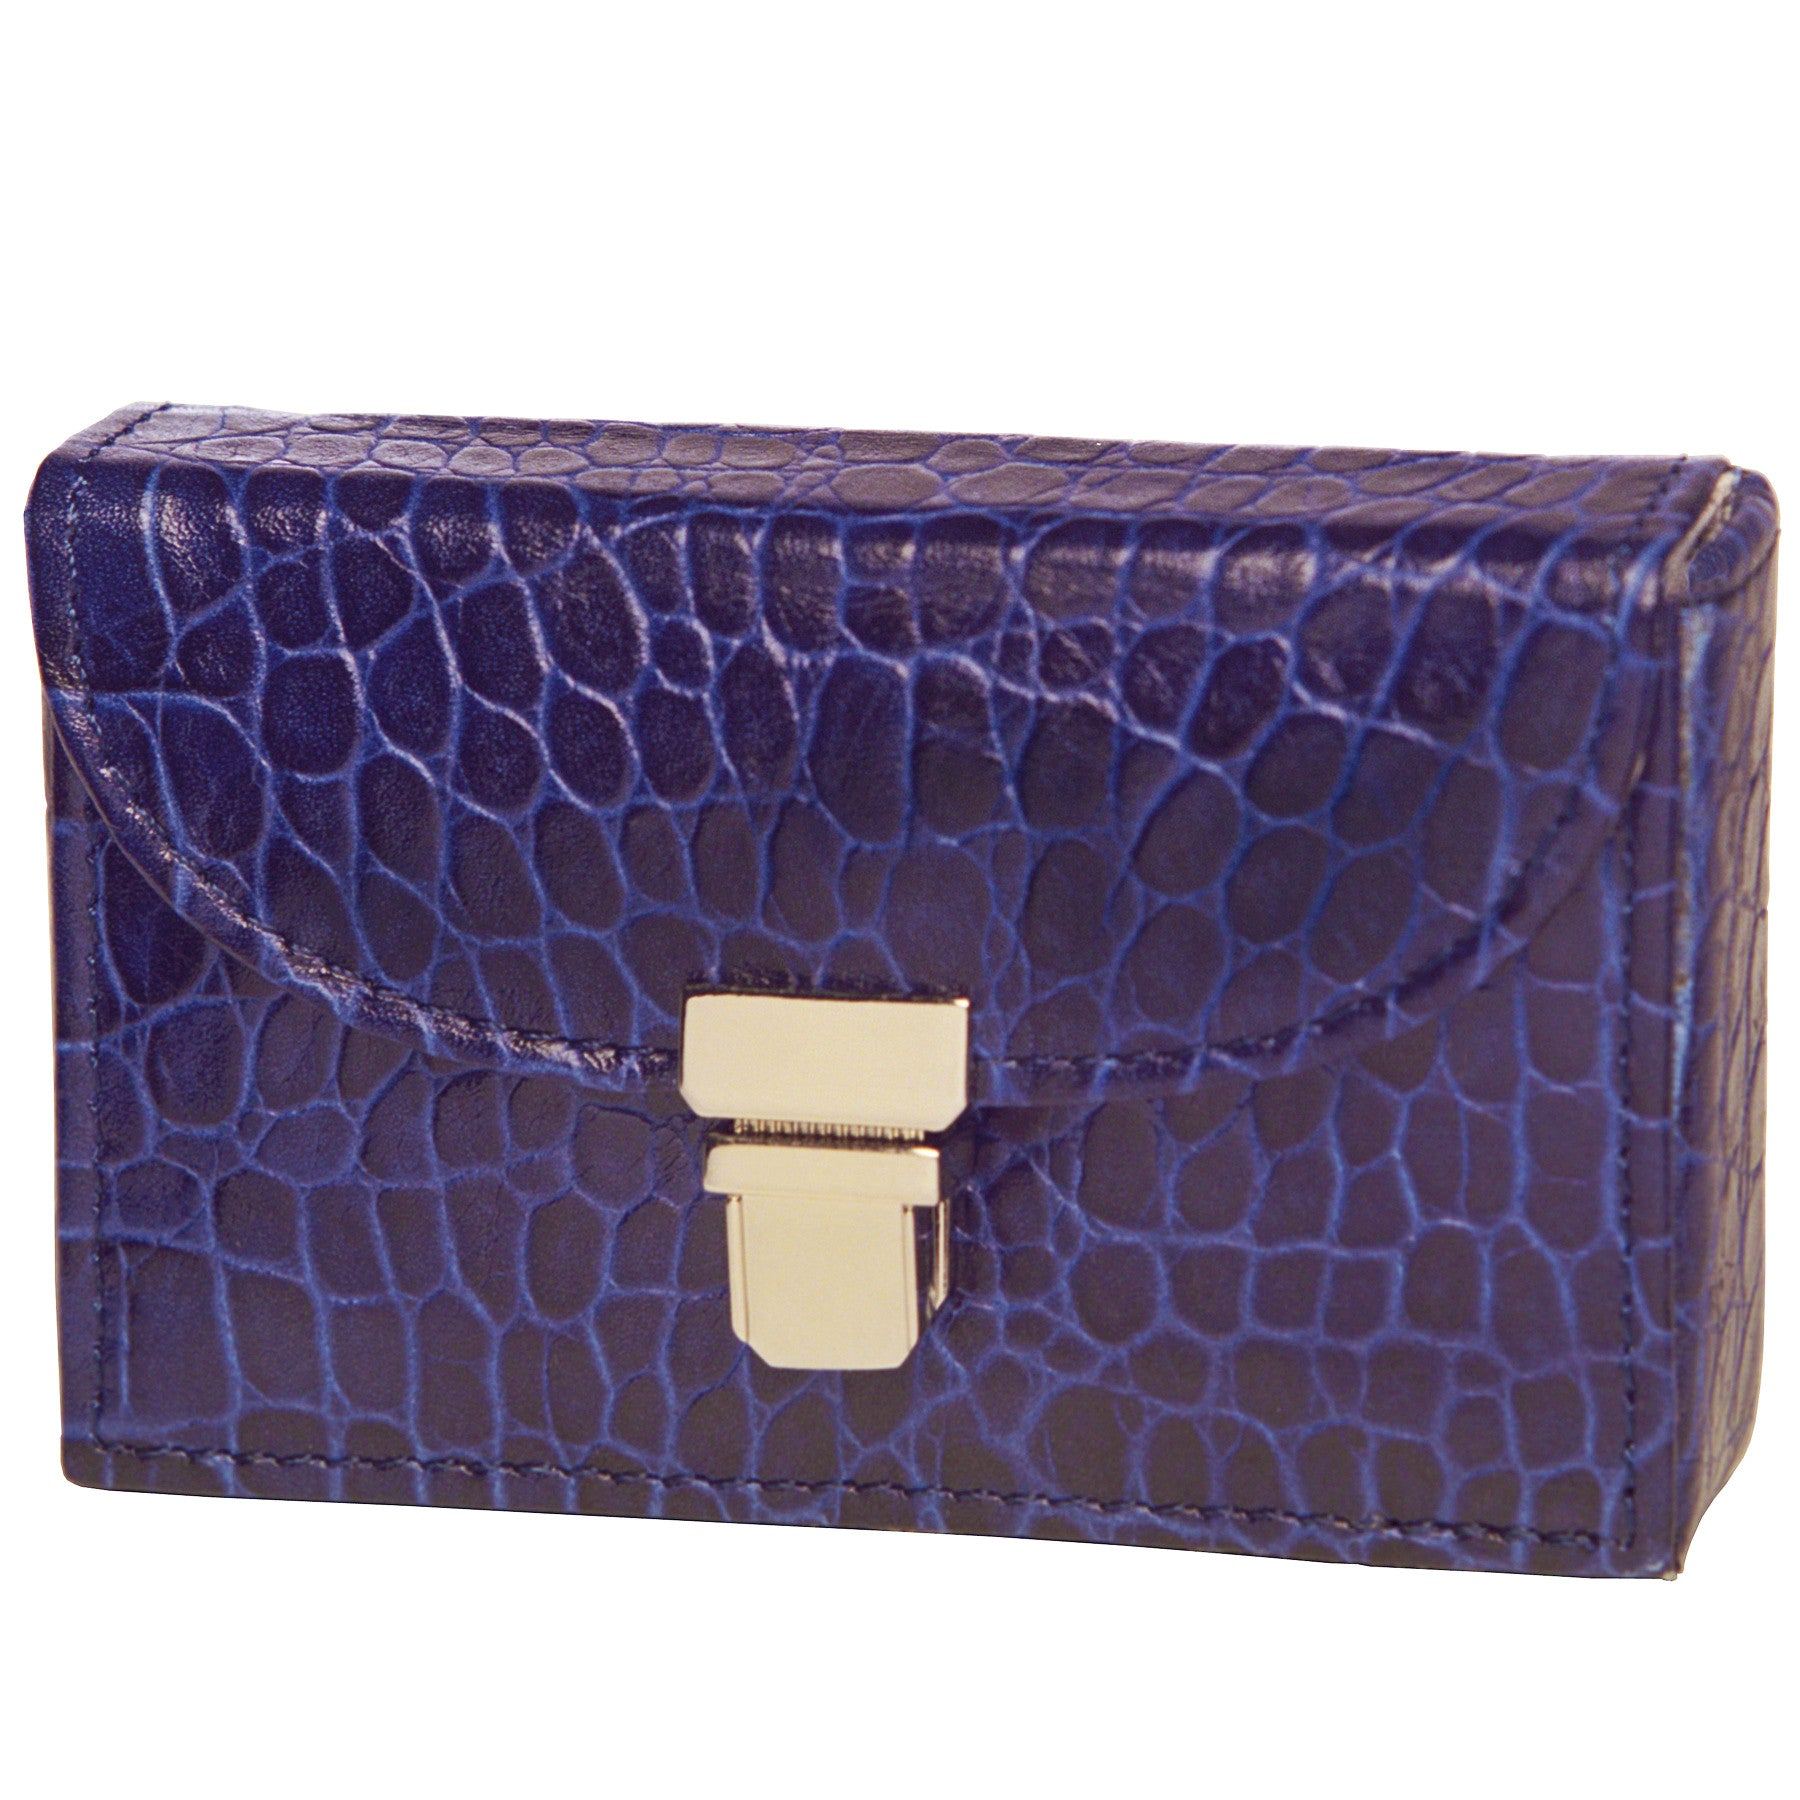 Alicia Klein leather card holder, sapphire blue croco print